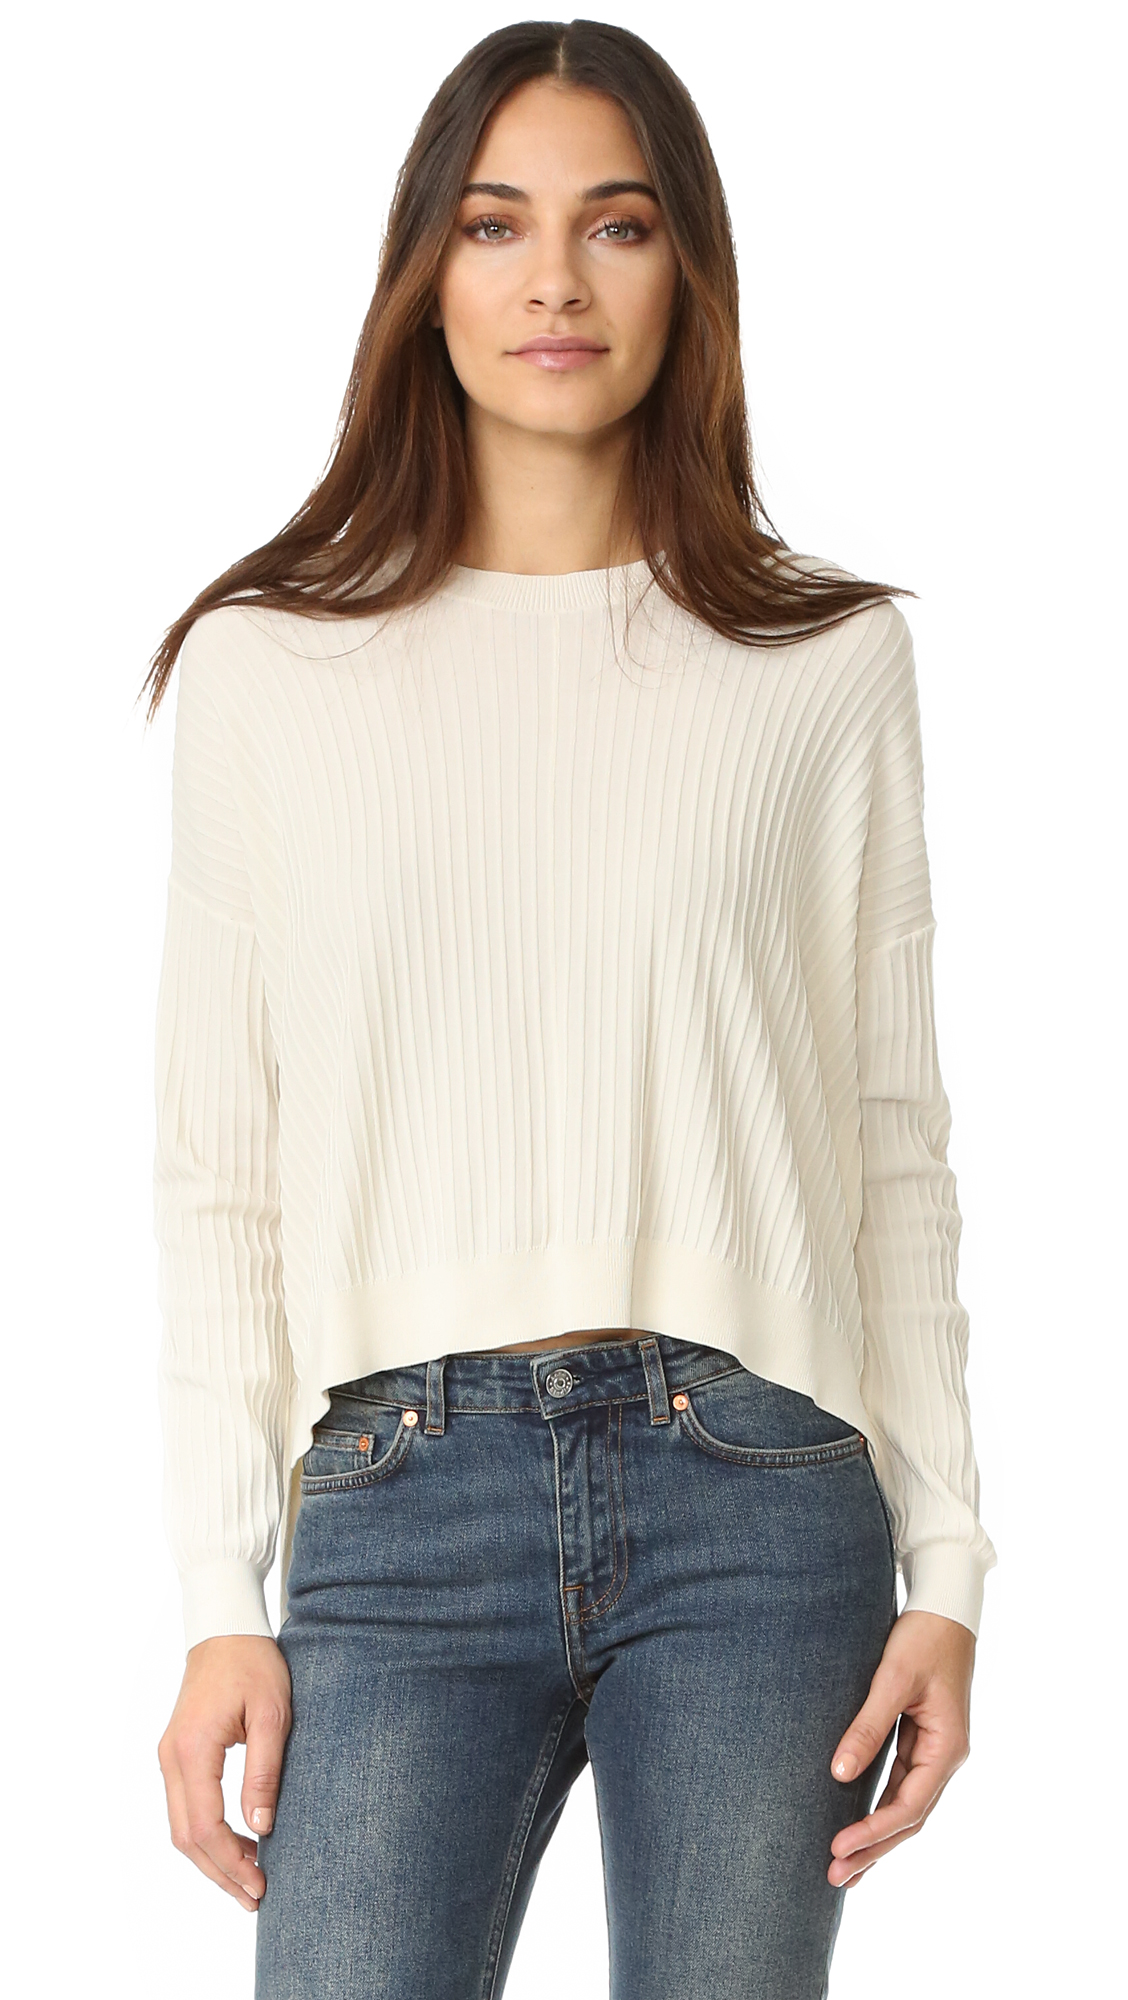 Acne Studios Issy Rib Sweater - Off White